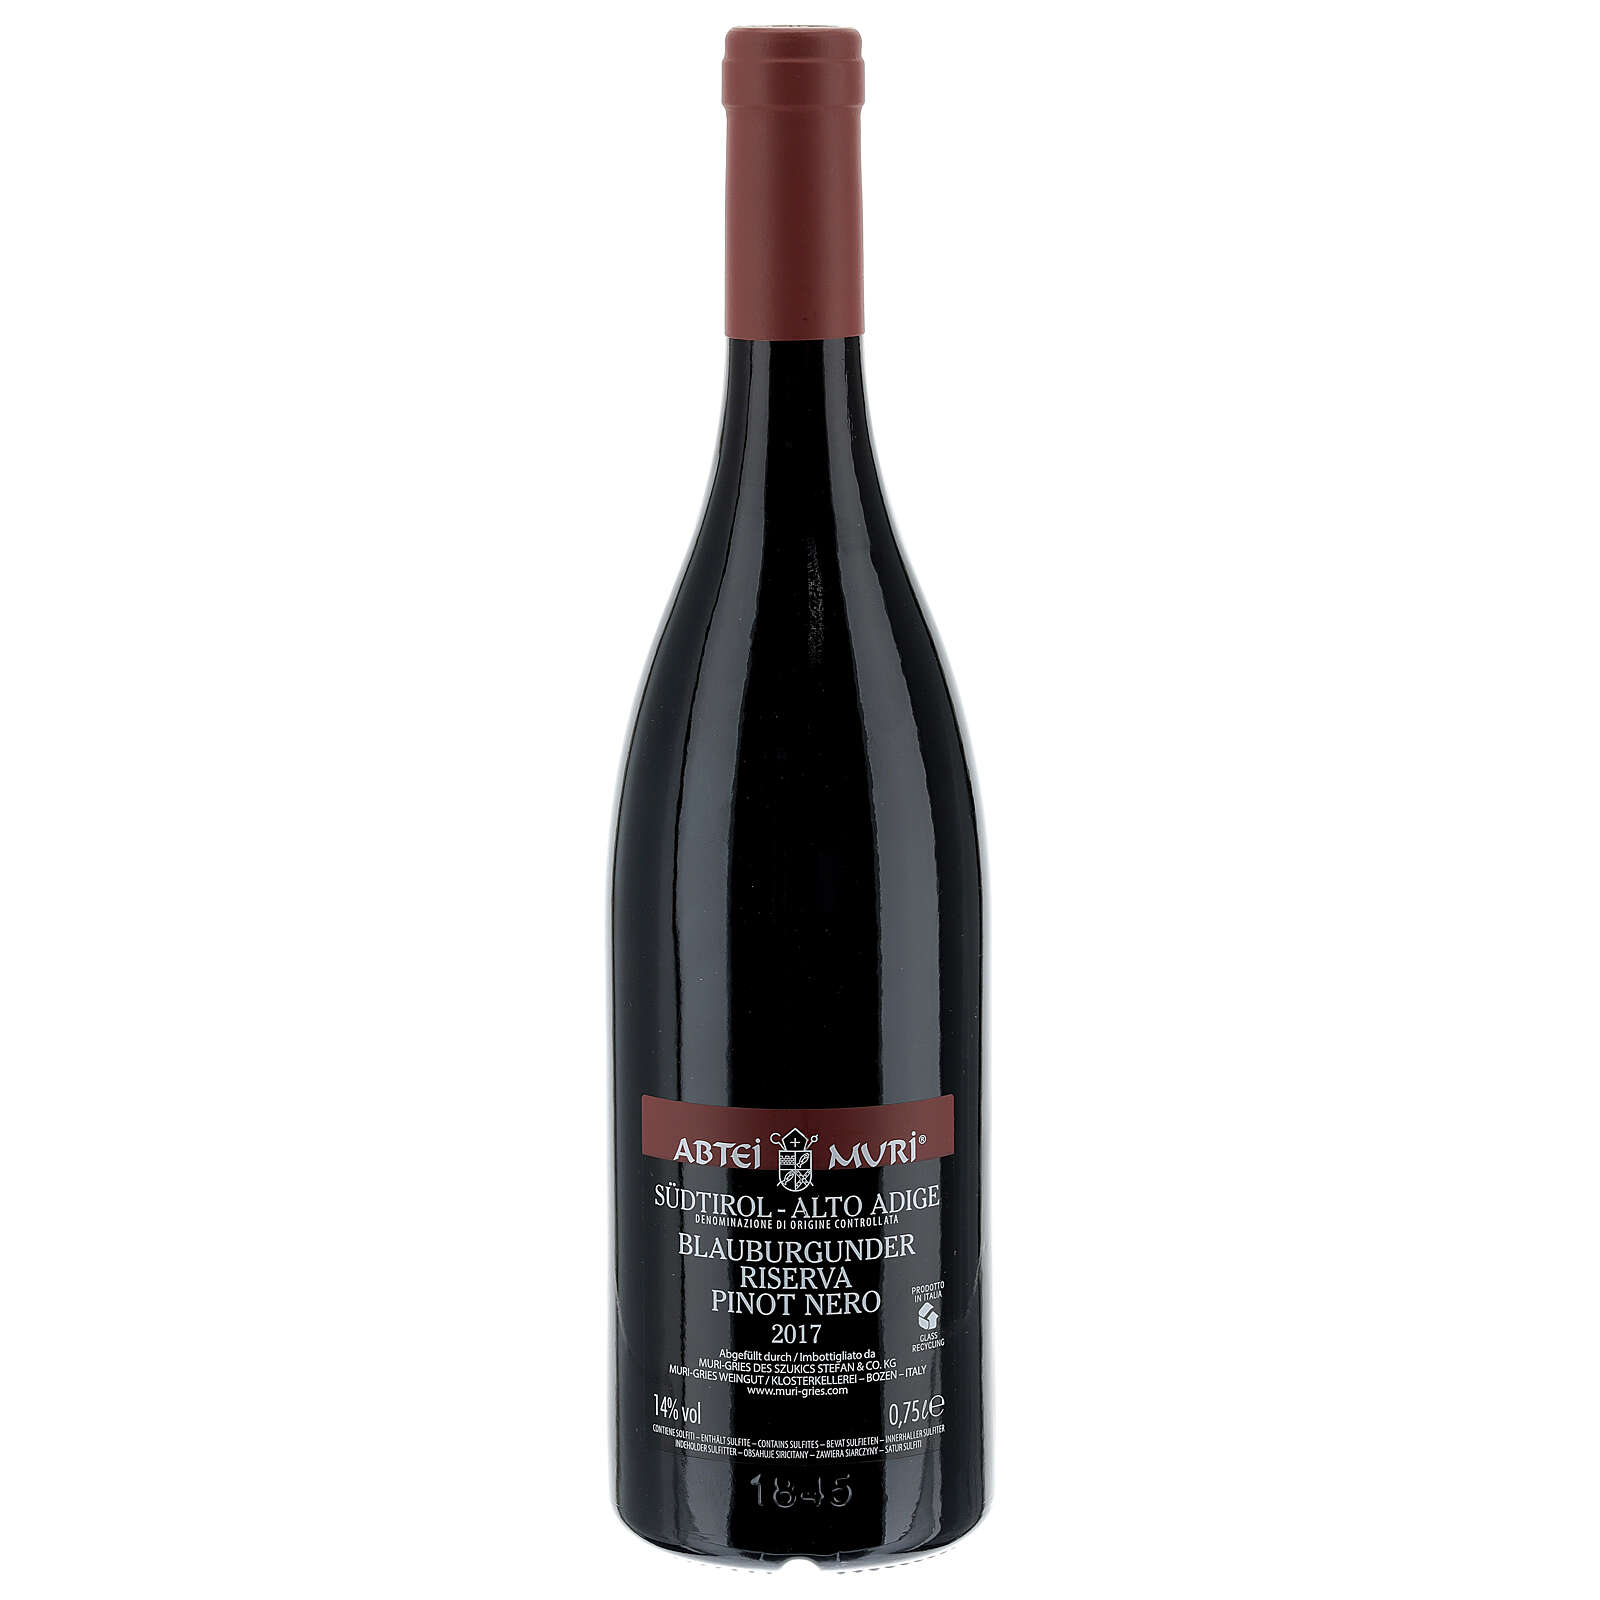 Pinot Nero Riserva DOC red wine Muri Gries Abbey 2017 3